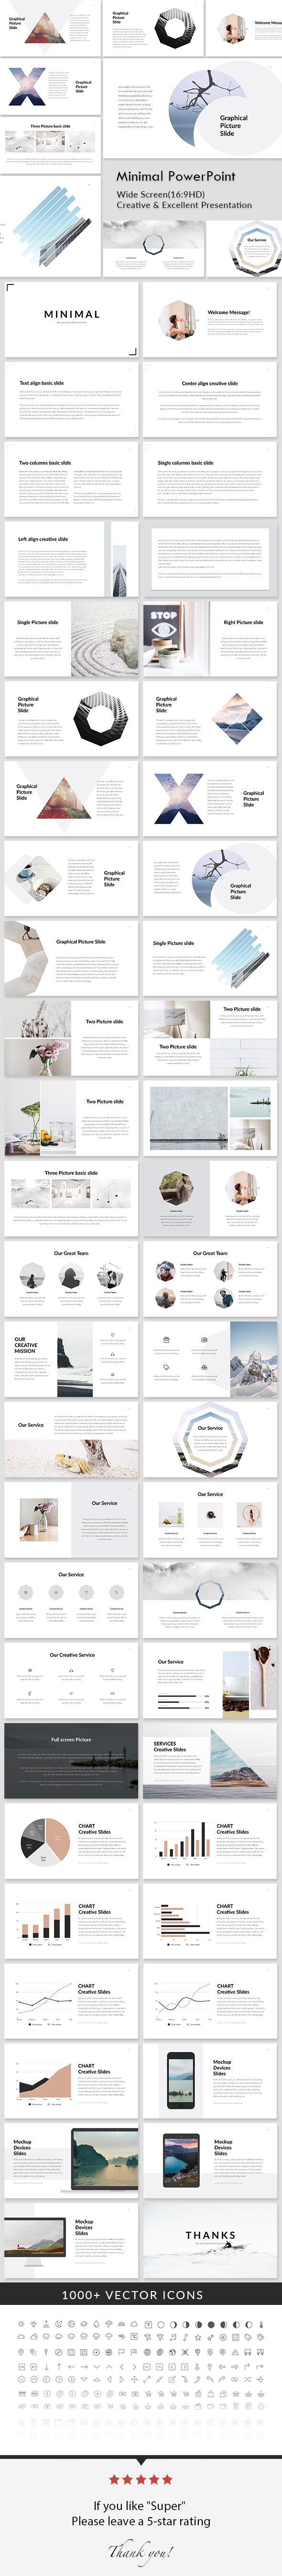 Minimal - Creative Powerpoint Presentation